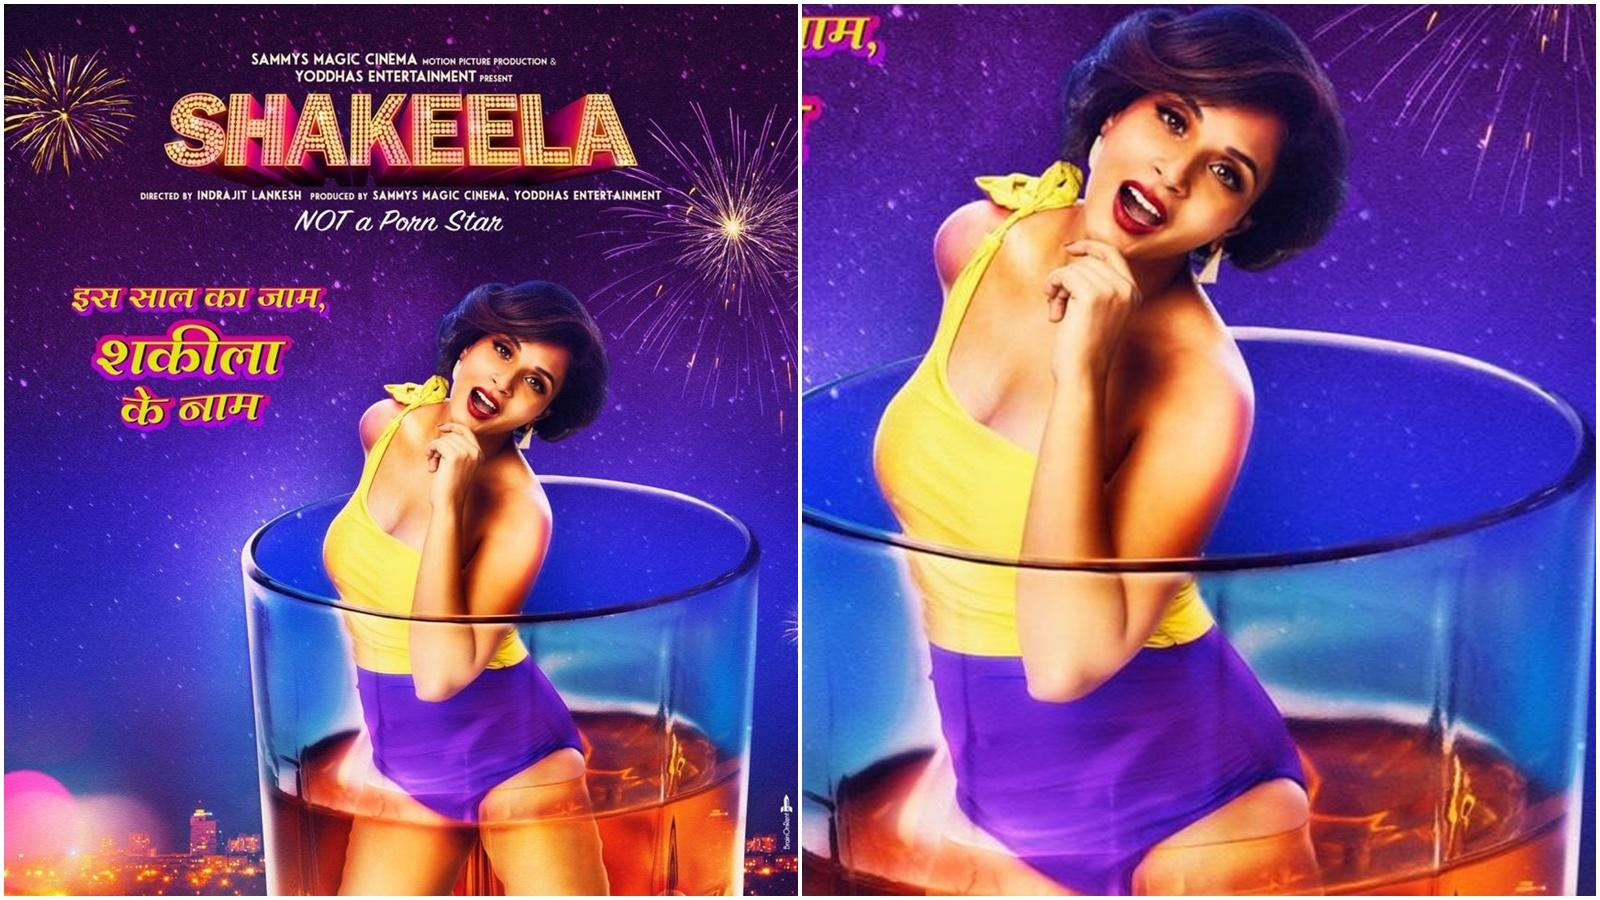 Shakeela poster: Richa Chadha wishes New Year, immersed in alcohol